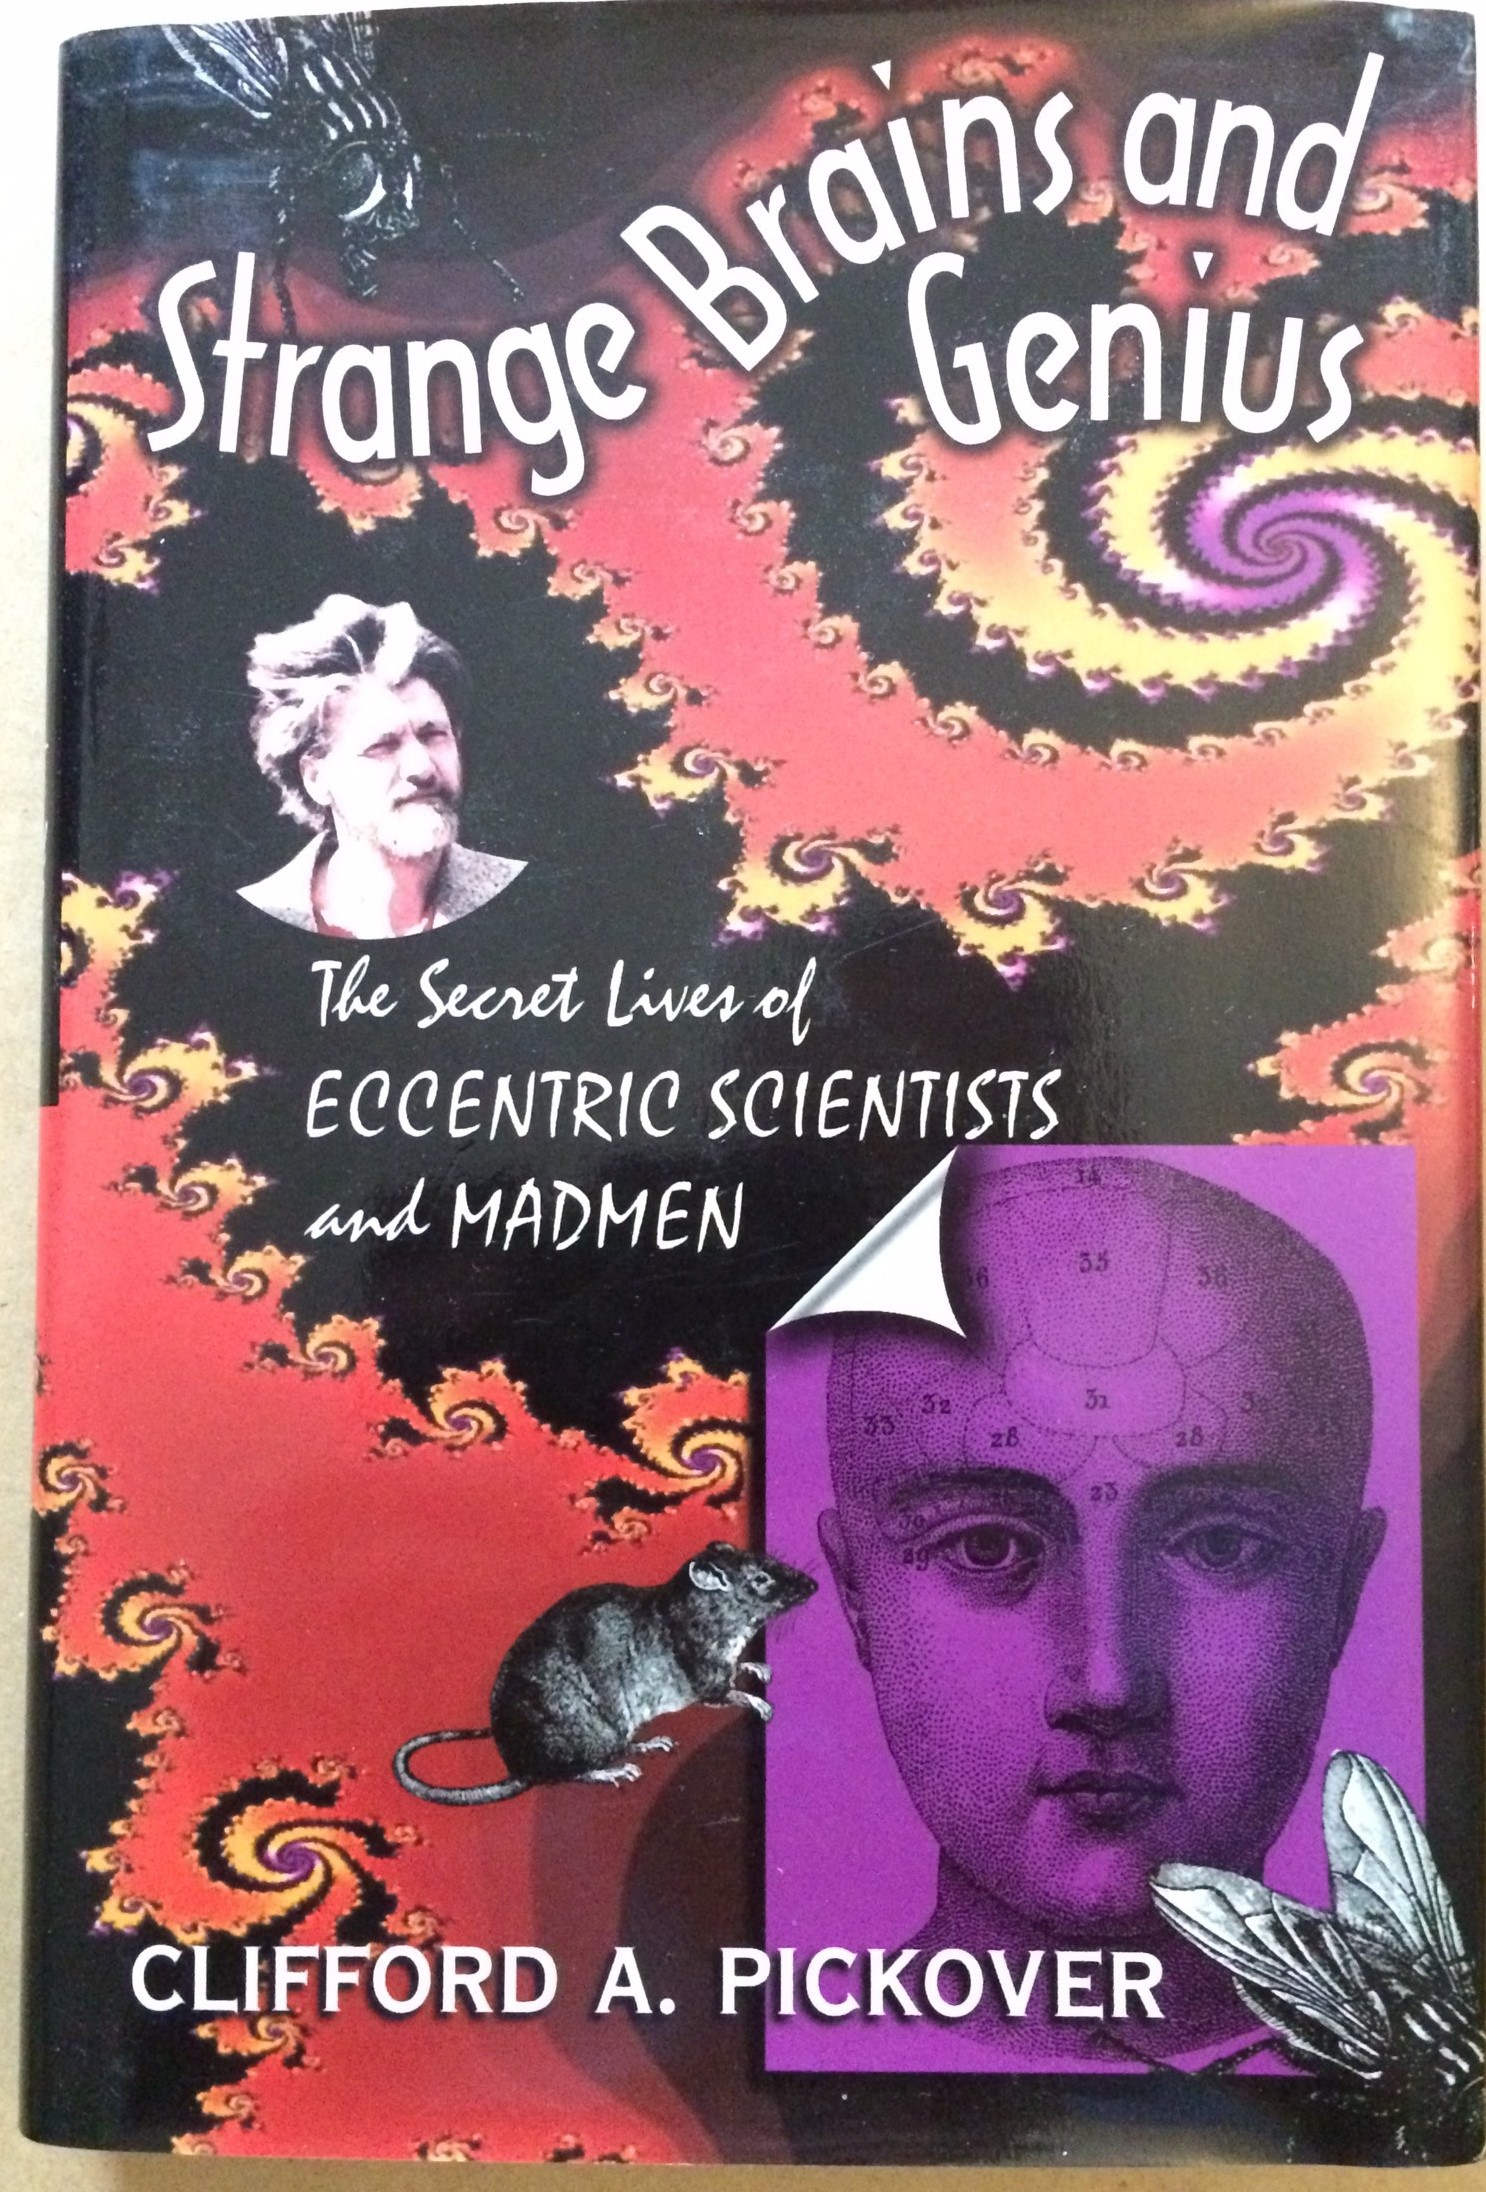 Image for Starnge Brains and Genius: The Secret Lives of Eccentric Scientists and Madmen